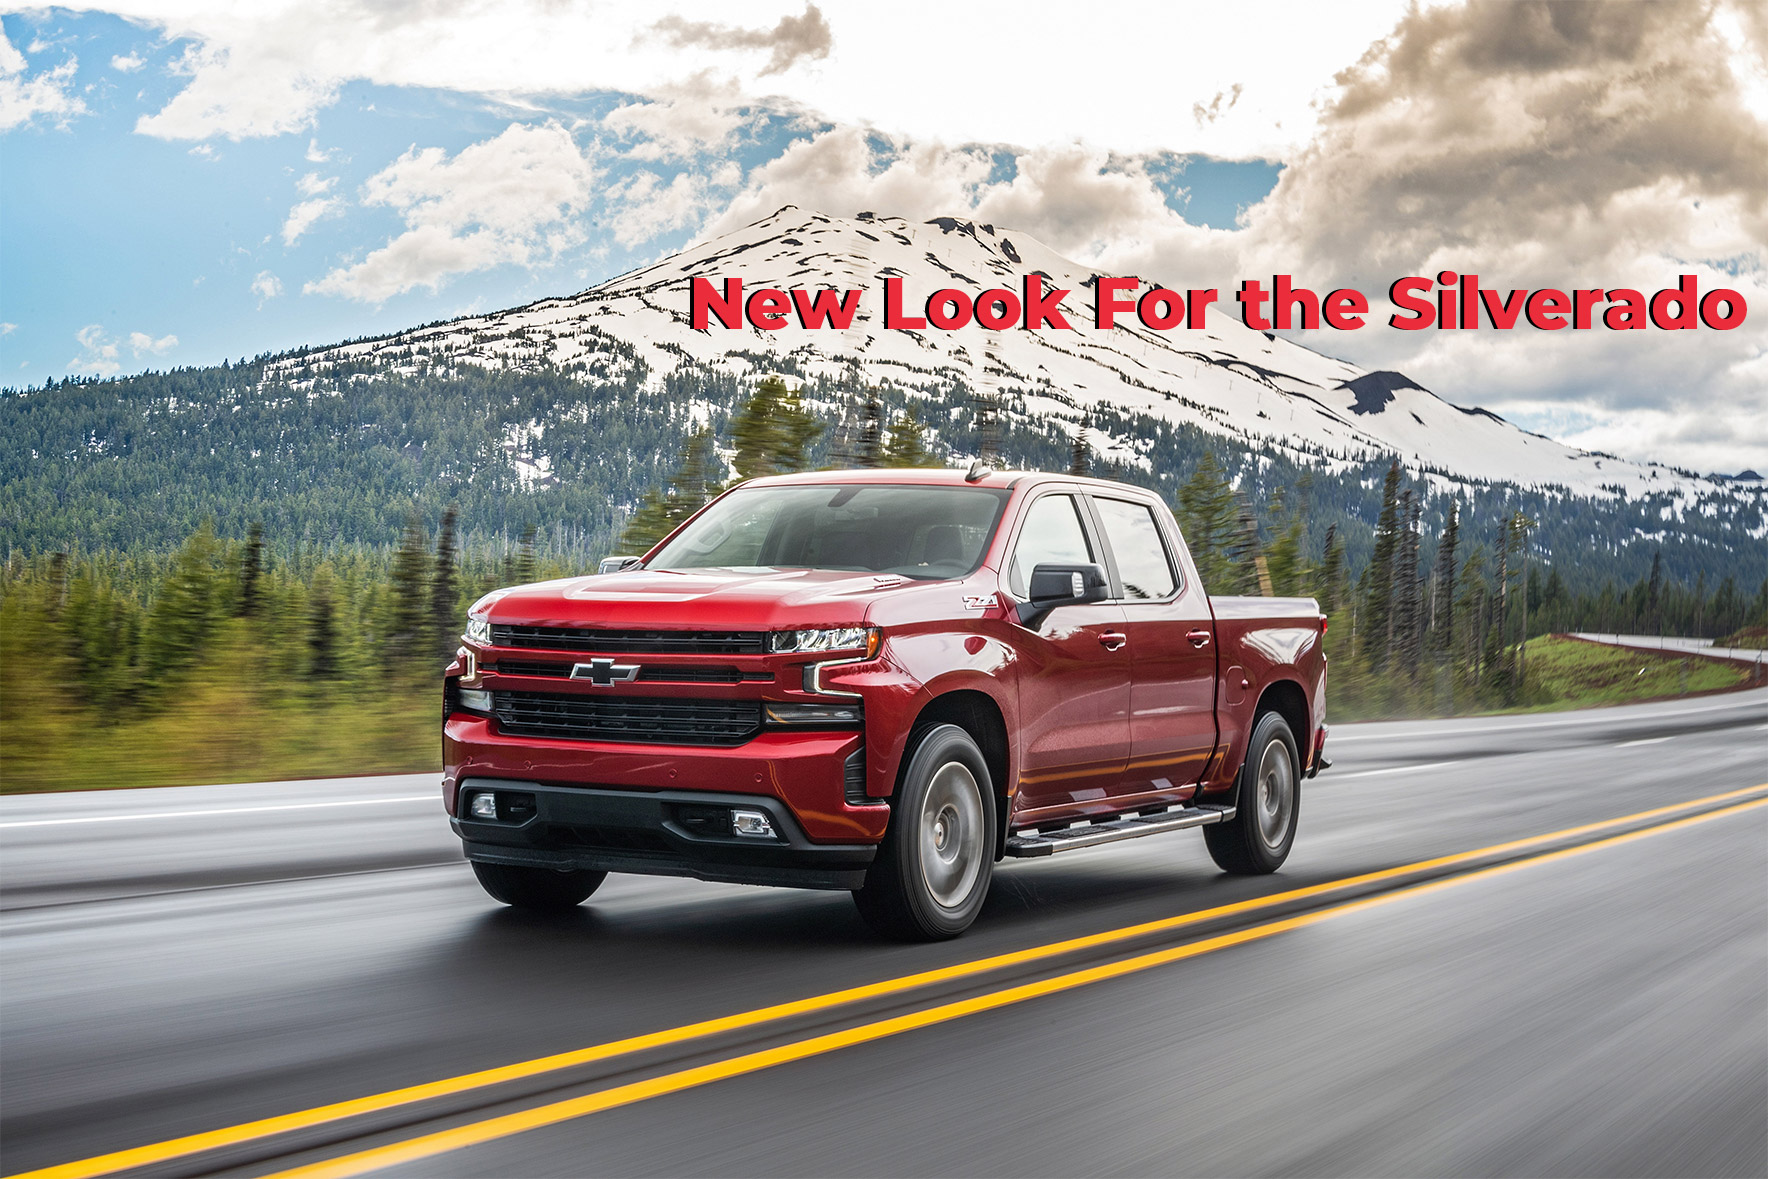 2020 Silverado Duramax Engine Claims 33mpg!